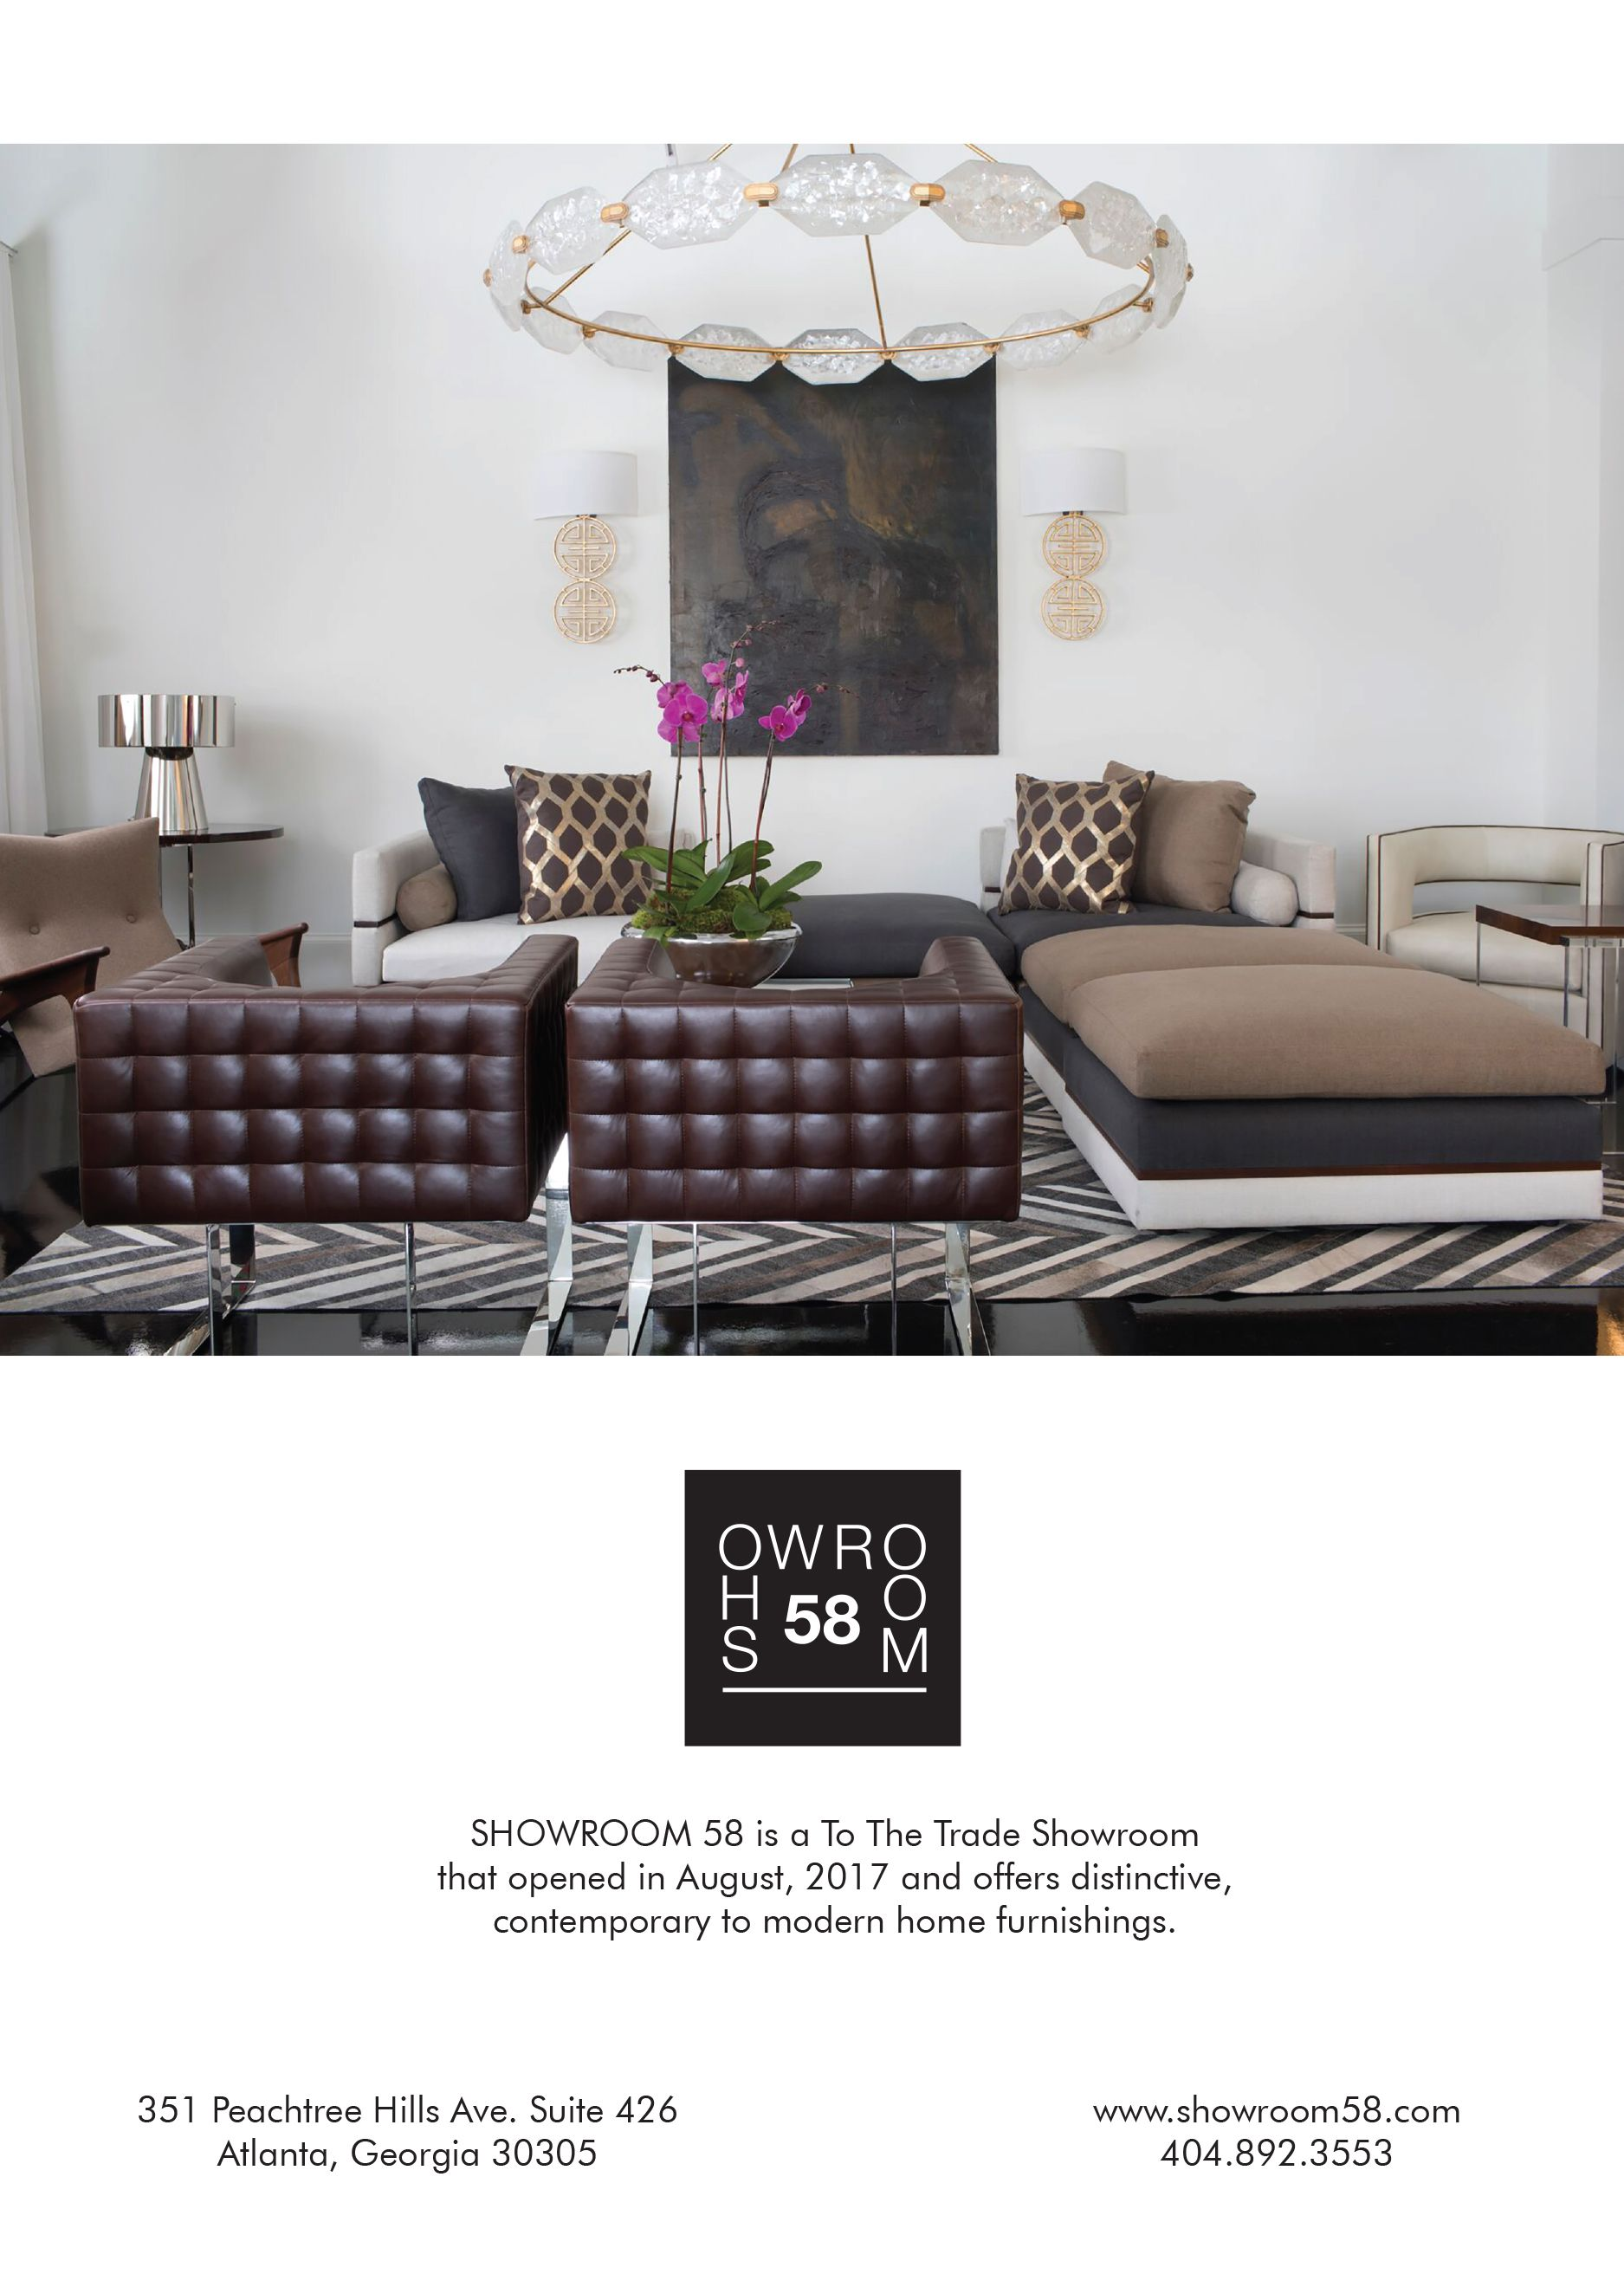 ad designed for showroom 58 a high end home furnishings showroom rh pinterest com